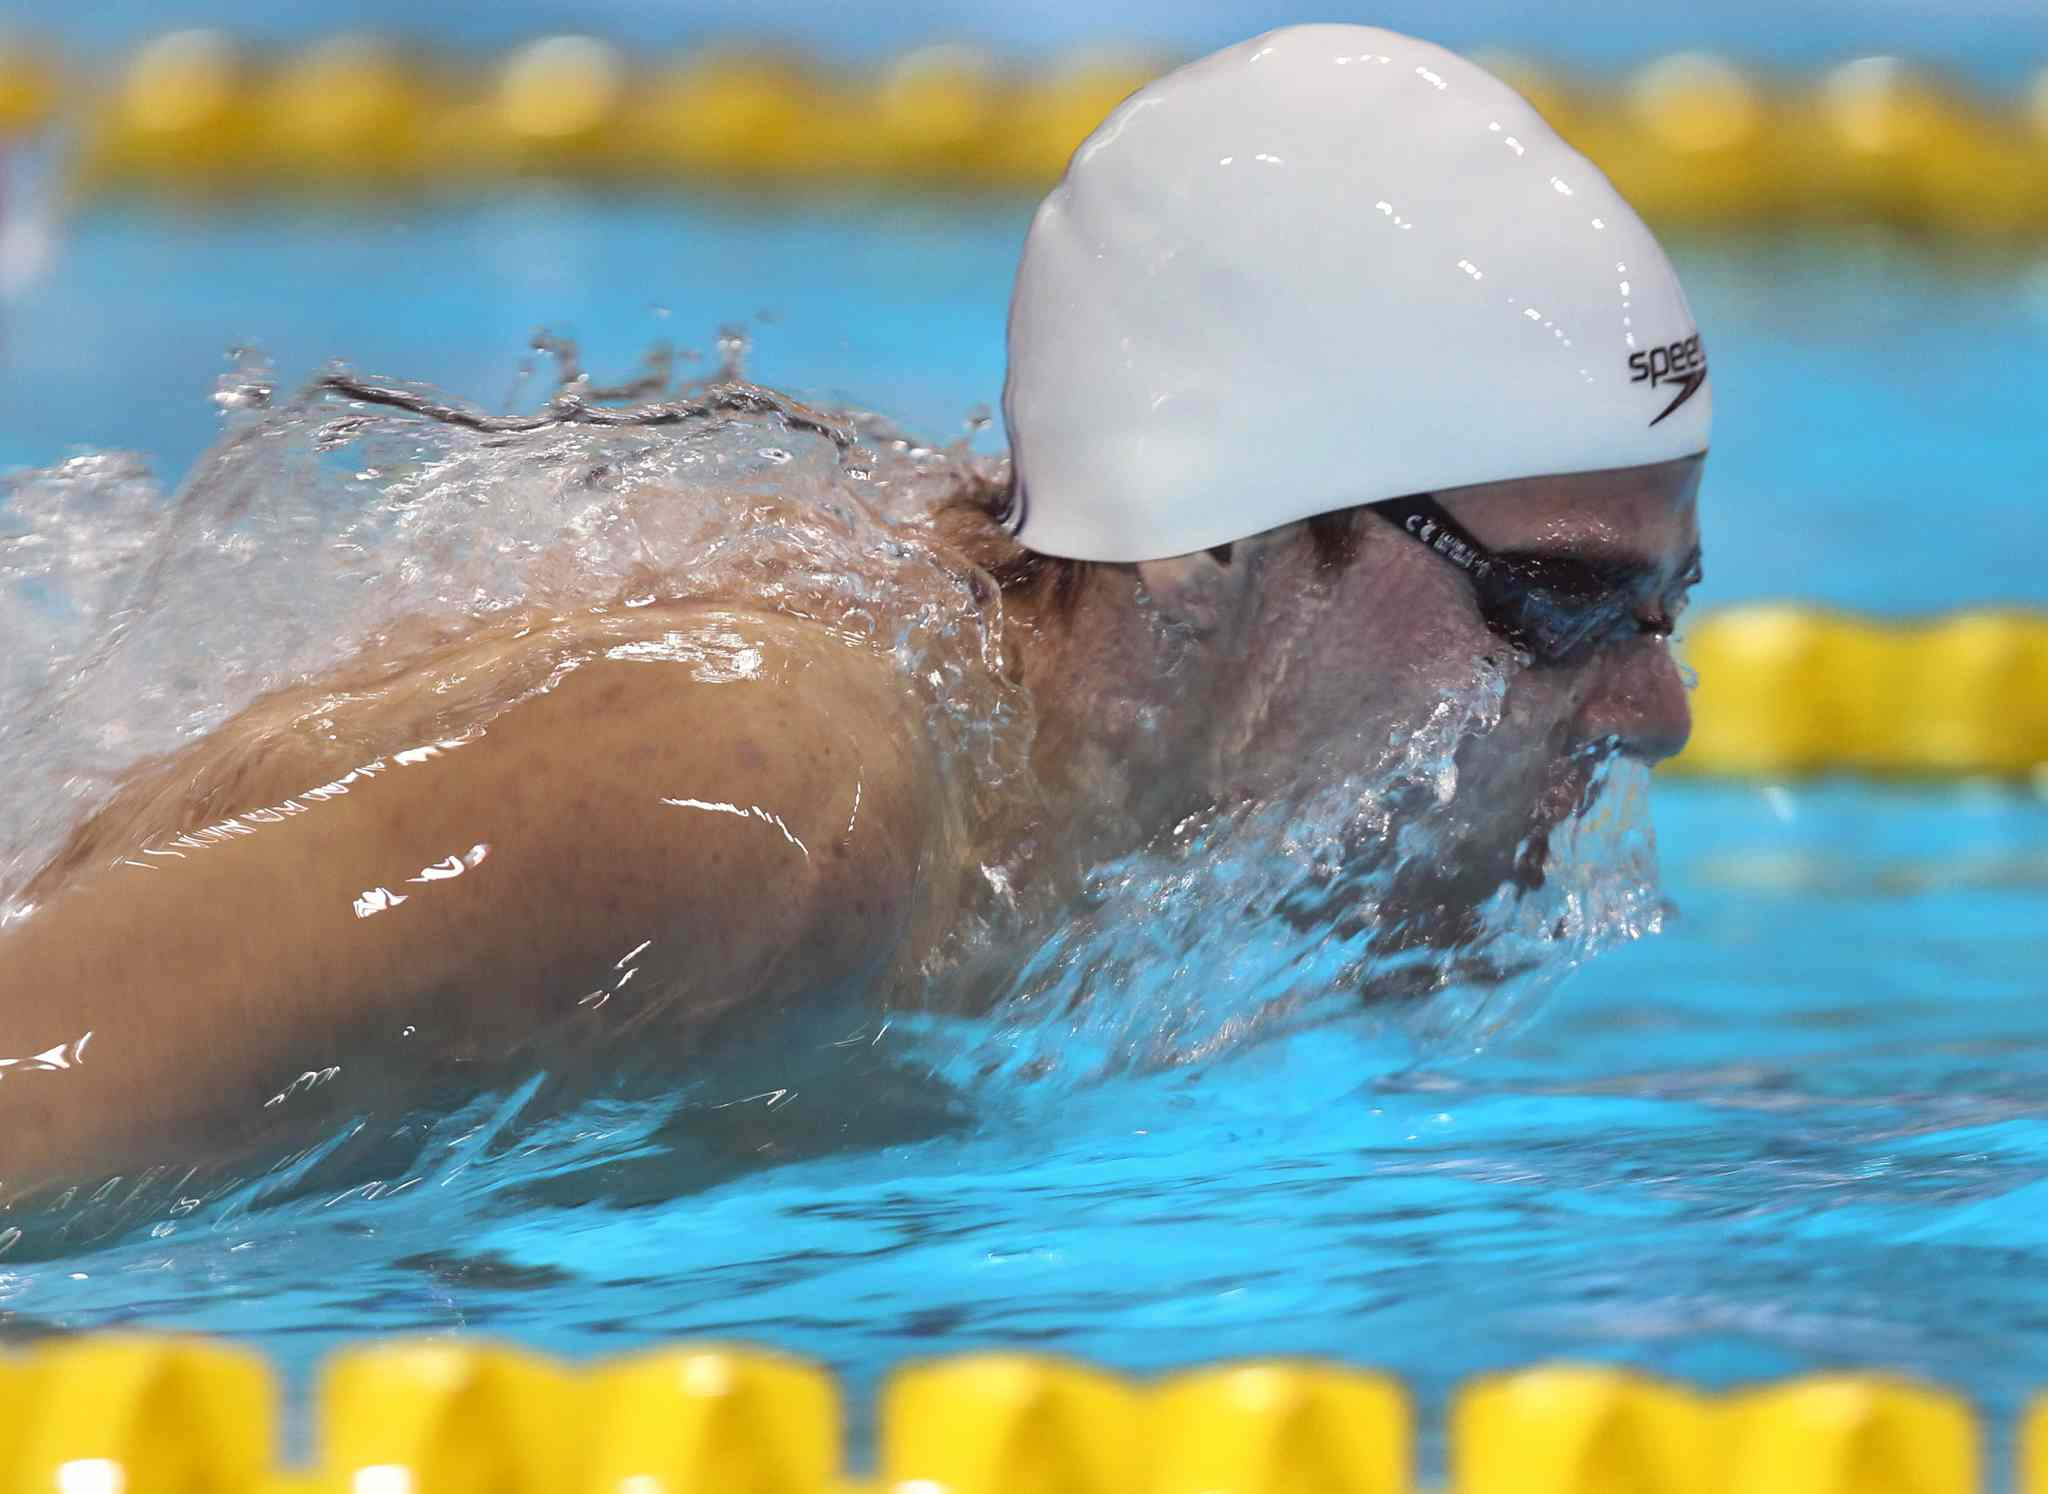 Wyatt Yarish of the Manata Swim Club in Winnipeg competes in the 17-18 year old final of the boys 200m fly at the 2014 Canadian Age Group Championships at Pan Am Pool in Winnipeg. (JOE BRYKSA / WINNIPEG FREE PRESS)